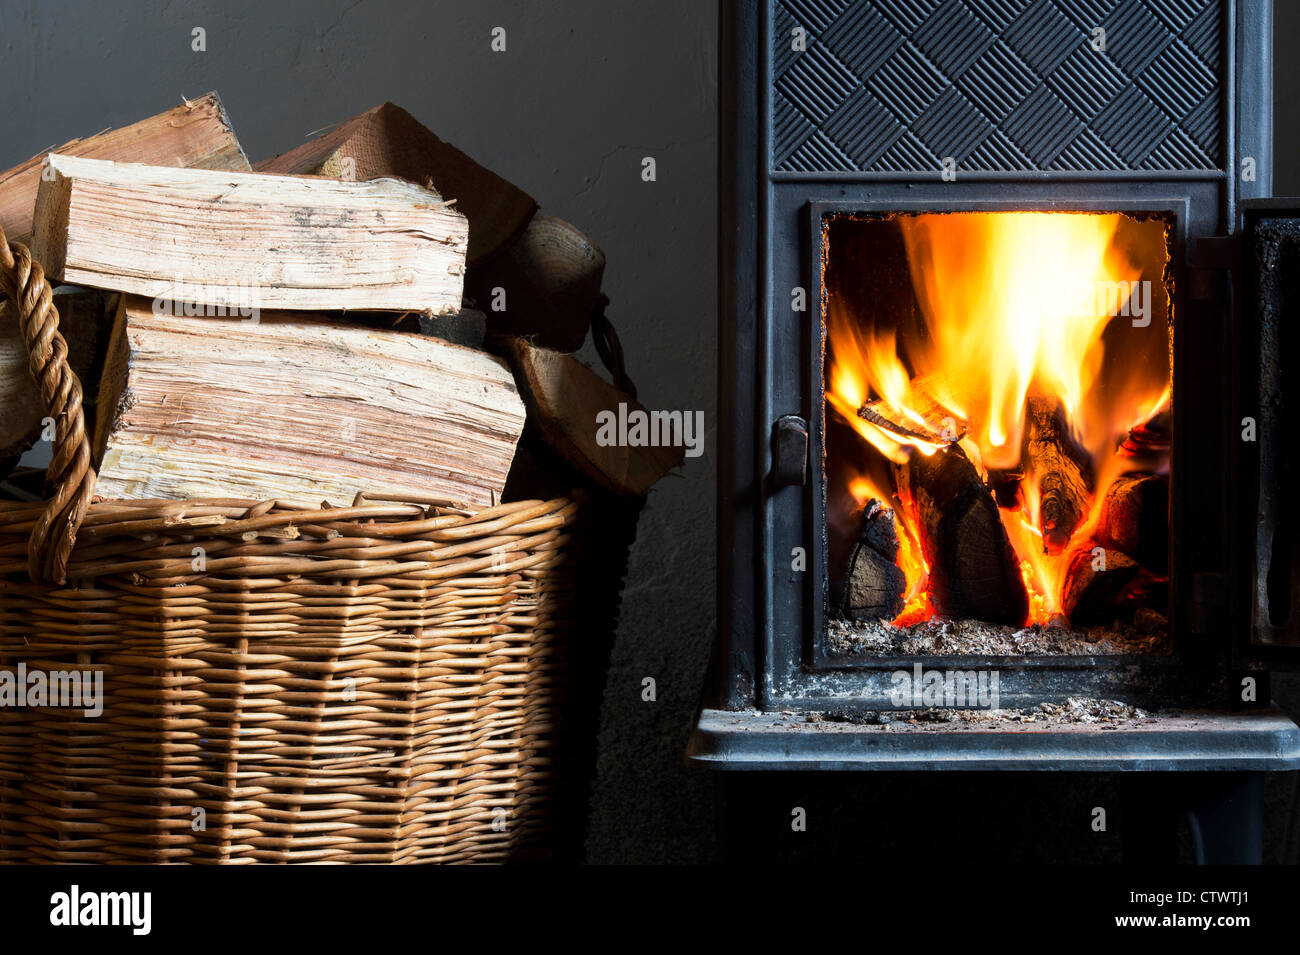 Wood burning in a woodburning stove and a basket of logs. UK - Stock Image